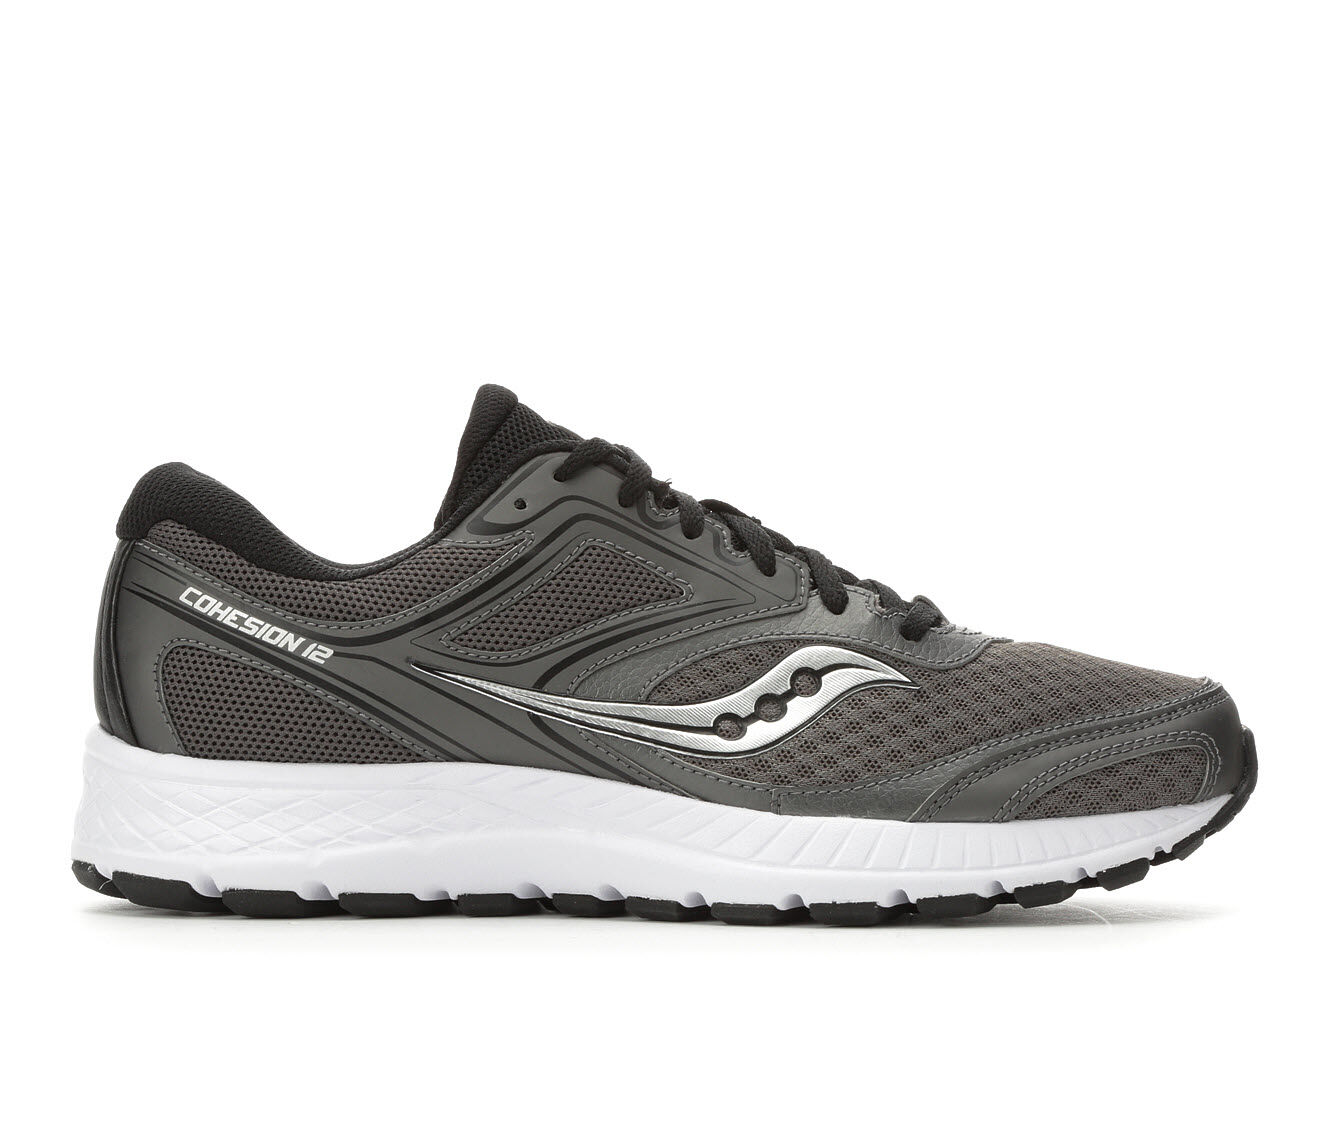 Men's Saucony Cohesion 12 Running Shoes Gry/Blk/Wht